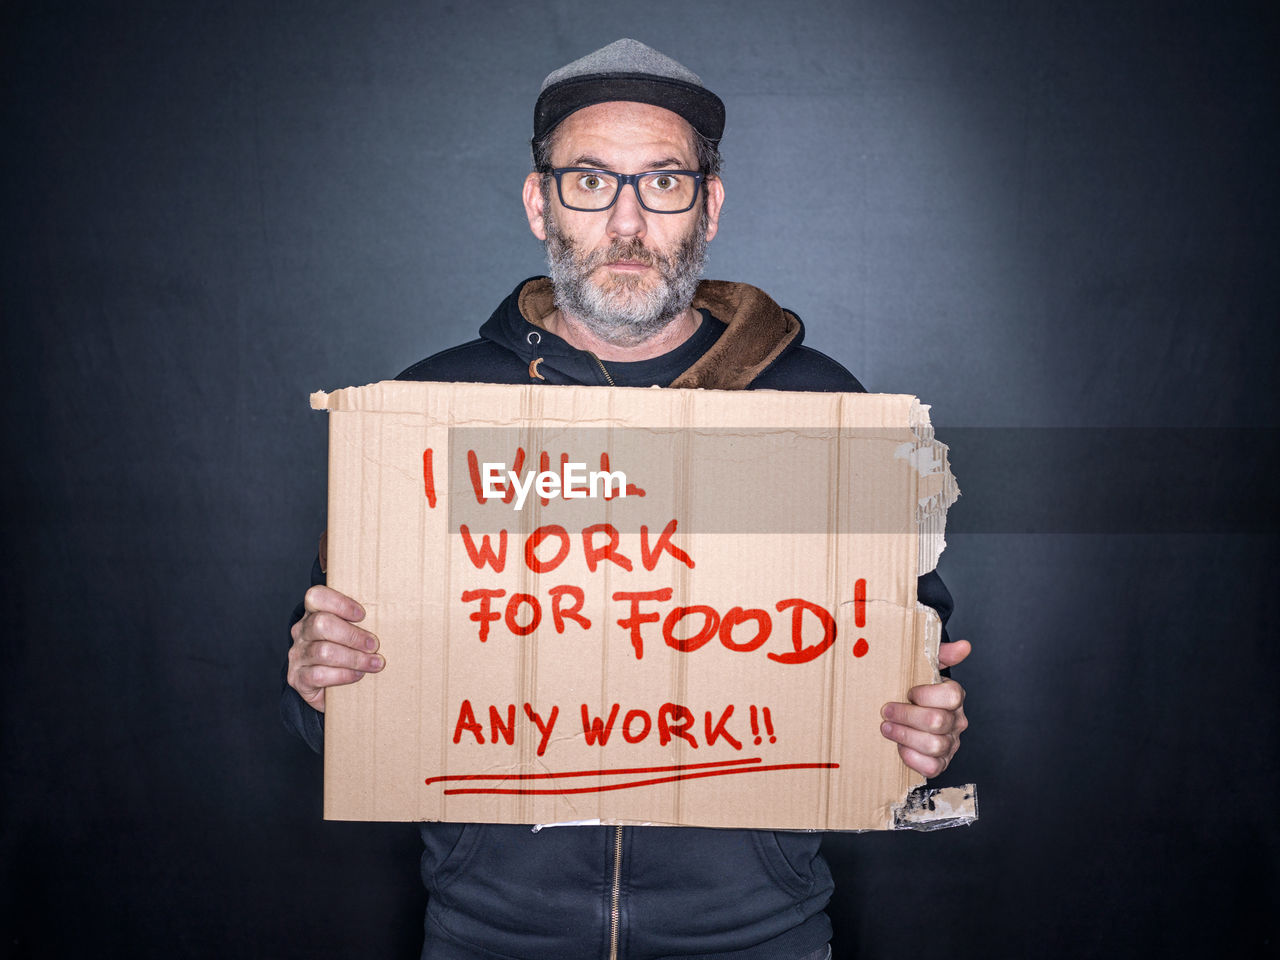 cardboard, eyeglasses, glasses, one person, holding, sign, communication, studio shot, indoors, social issues, adult, black background, text, sadness, gray, men, mature adult, depression - sadness, unemployment, hopelessness